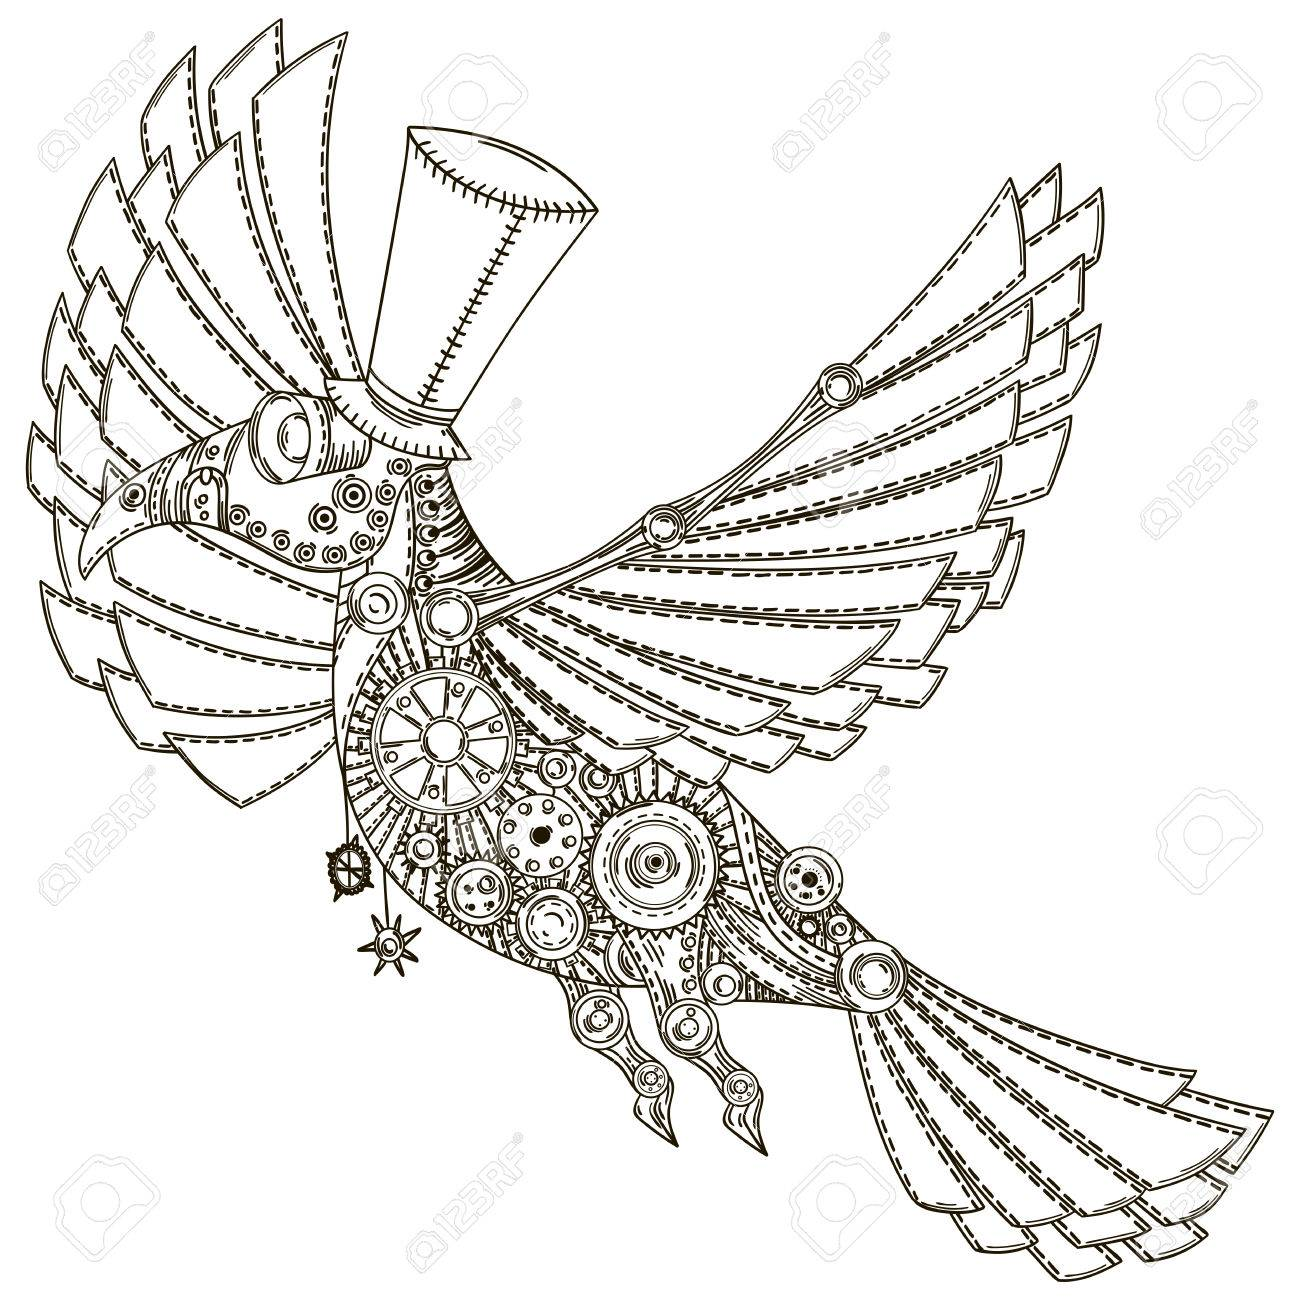 mechanical bird in ste unk style vintageillustration royalty free  mechanical bird in ste unk style vintageillustration stock vector 64271826